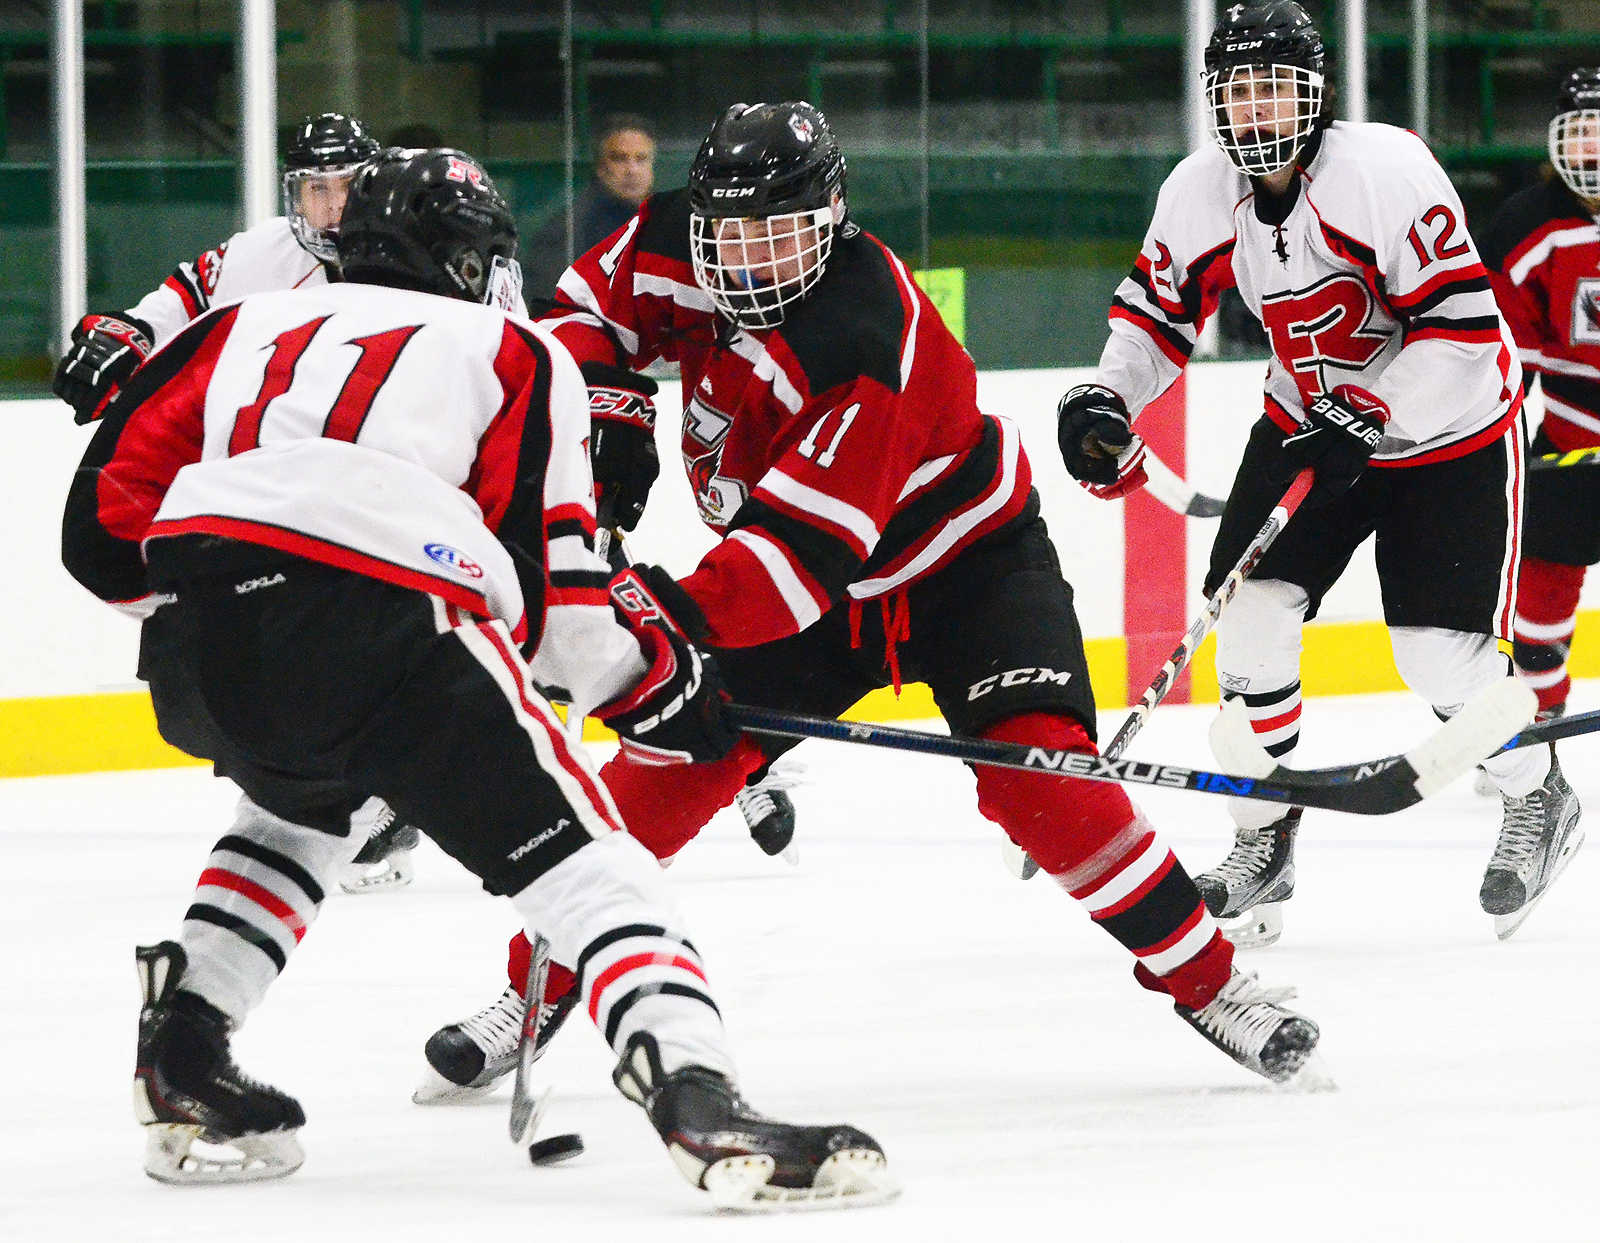 Eden Prairie's Casey Mittelstadt (11 in red) tallied a goal and an assist in leading the Eagles to a 5-2 victory over Elk River in opening round action of the 34th Annual Edina Classic at Braemar Ice Arena on Dec. 17th in Edina, MN. Photo by Nick Wosika